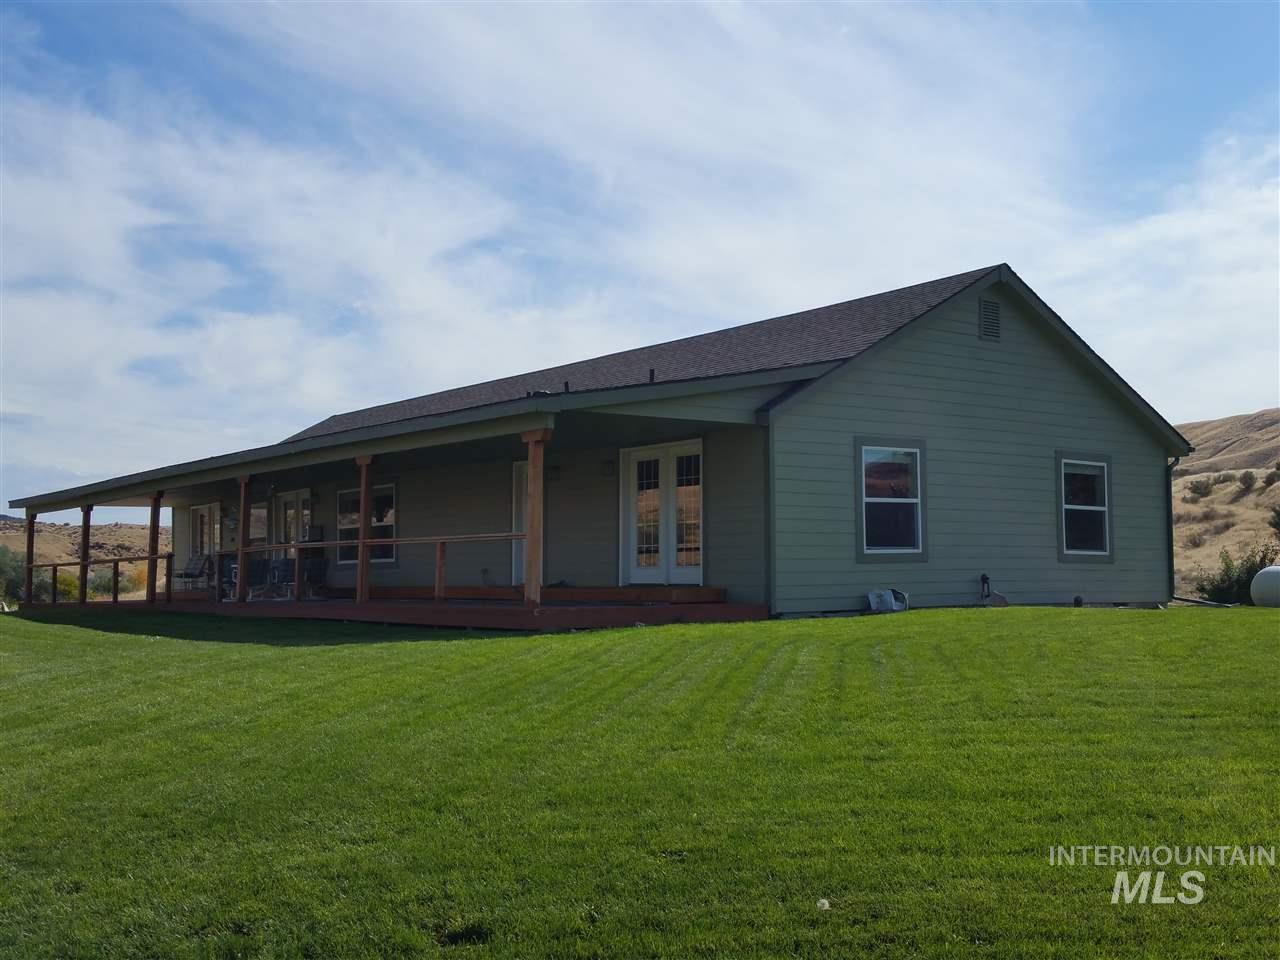 Casa Unifamiliar por un Venta en 6323 Golden Springs Ranch 6323 Golden Springs Ranch Bliss, Idaho 83314